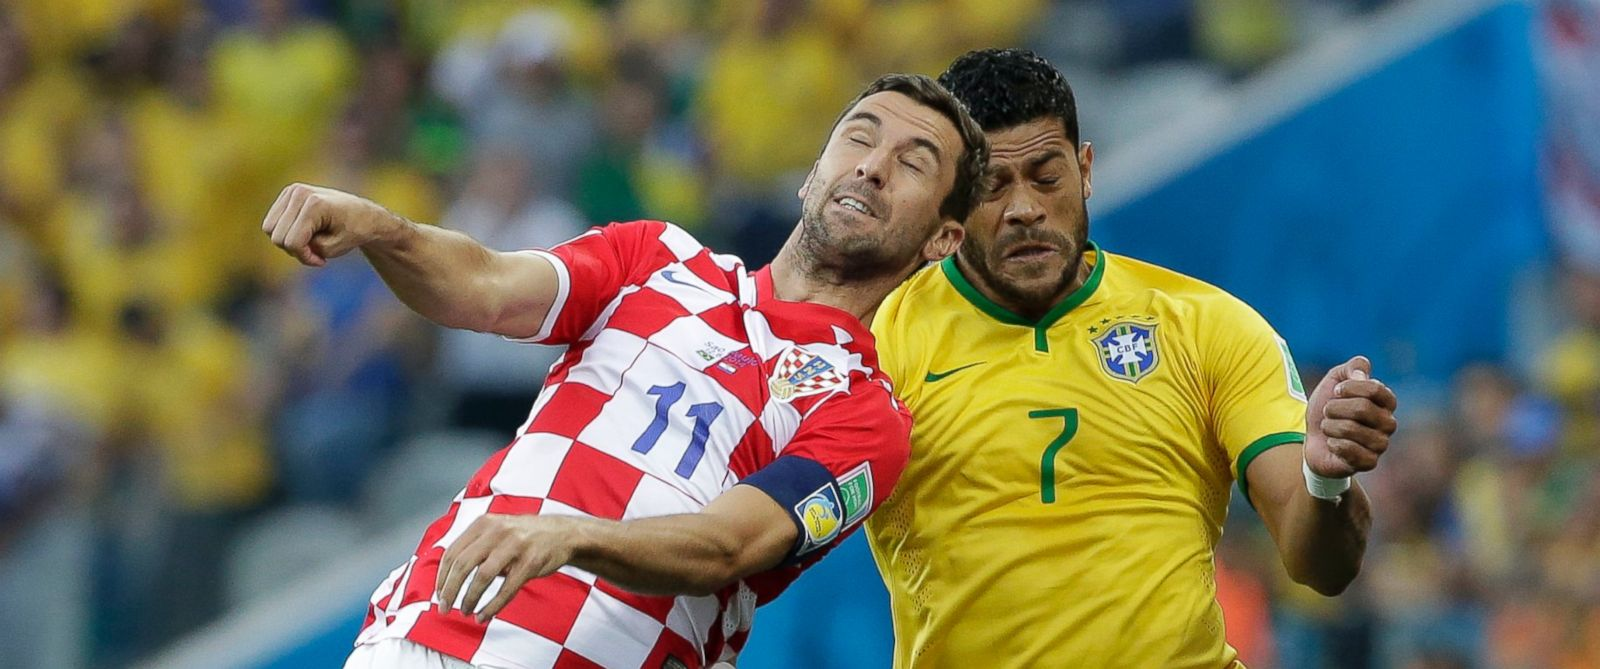 PHOTO: Croatias Darijo Srna, left, and Brazils Hulk battle for the ball during the group A World Cup soccer match between Brazil and Croatia, the opening game of the tournament, in the Itaquerao Stadium in Sao Paulo, Brazil, June 12, 2014.